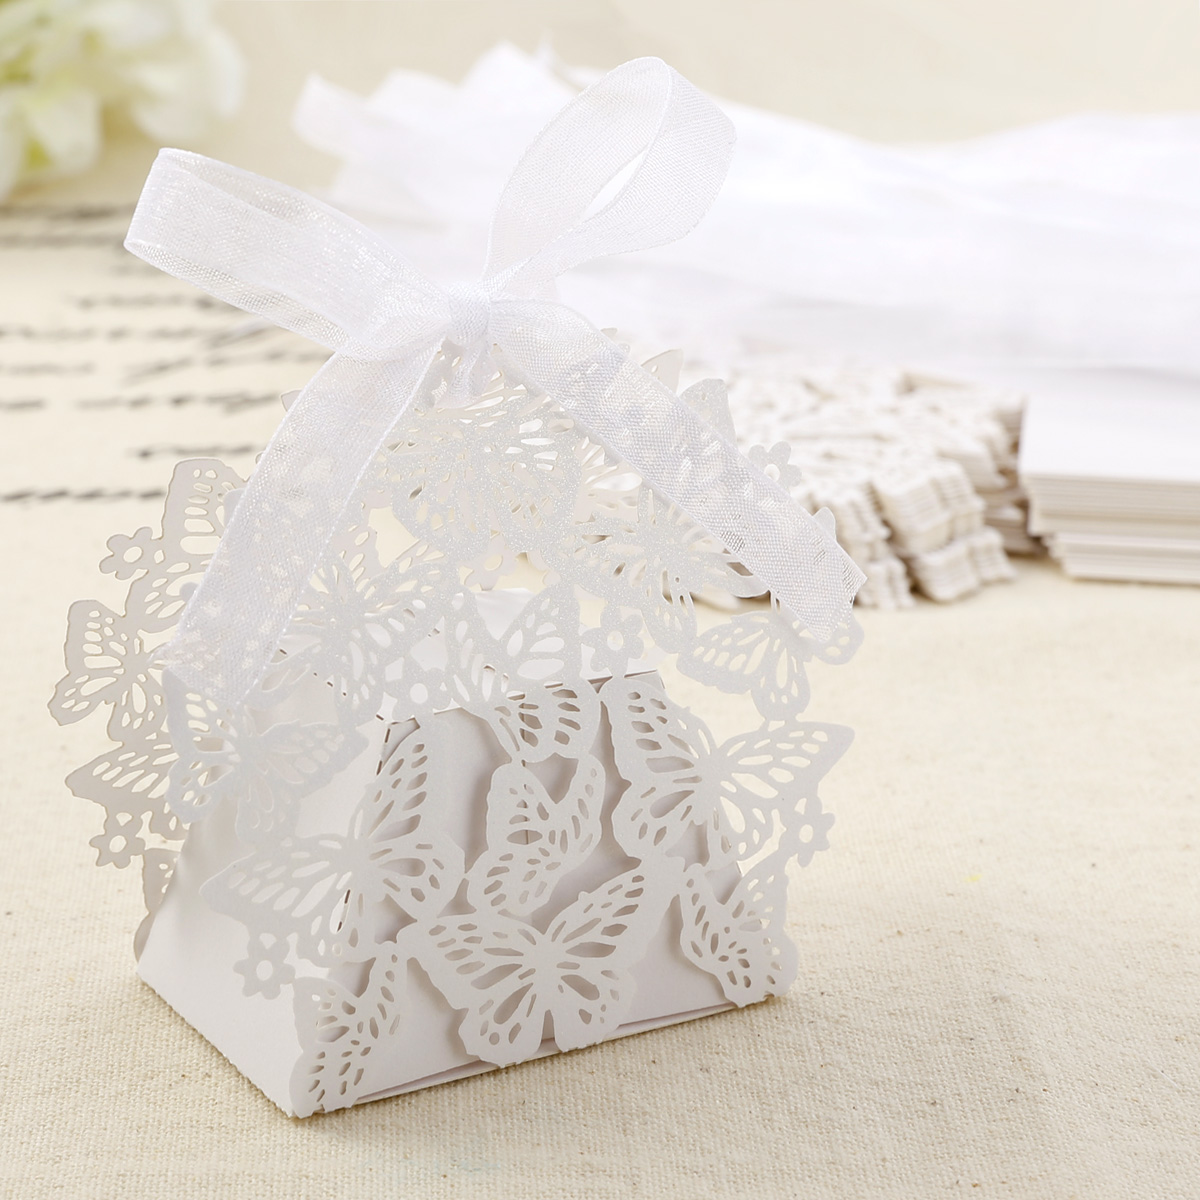 Butterfly Paper Cut Wedding Favor Sweet Cake Gift Candy Boxes Table ...